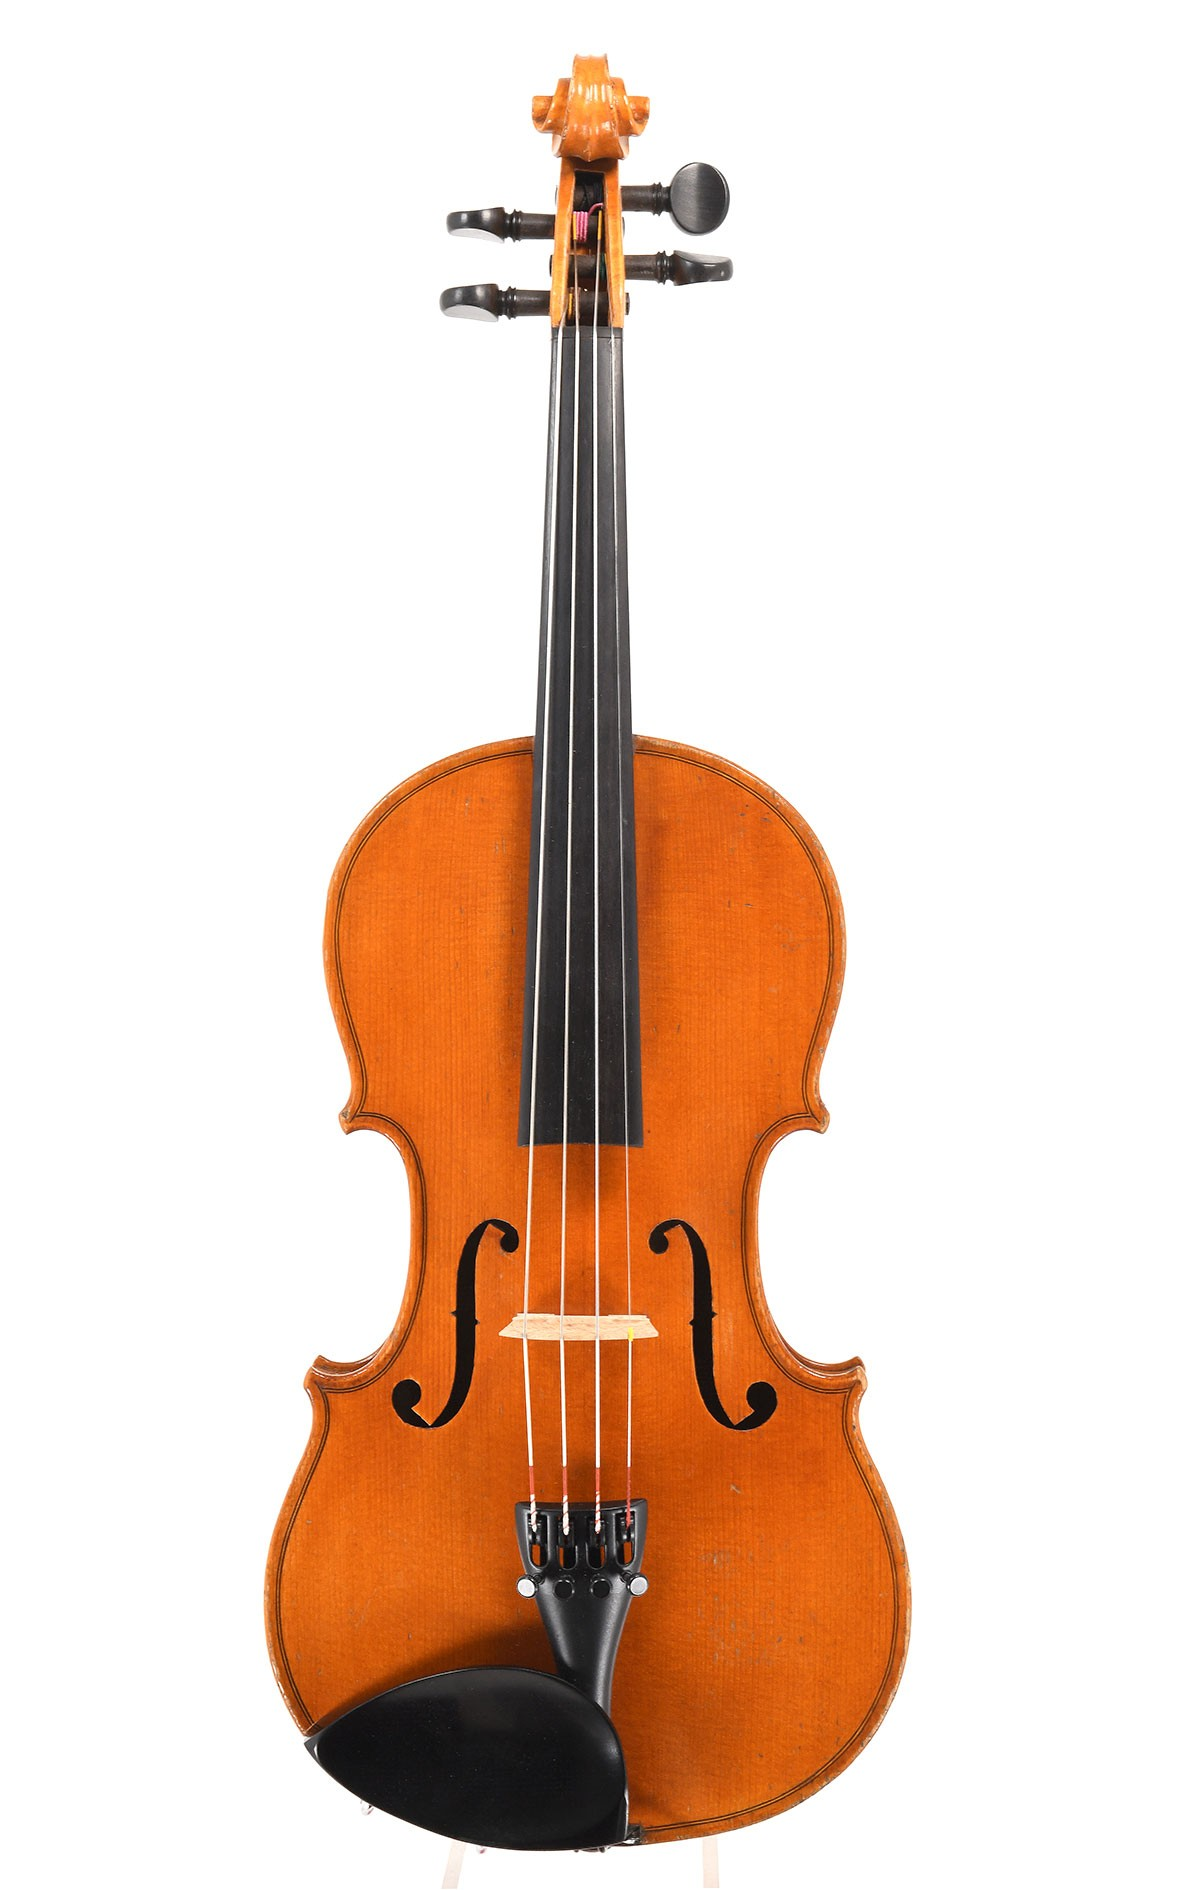 French 3/4 violin with a mellow sound